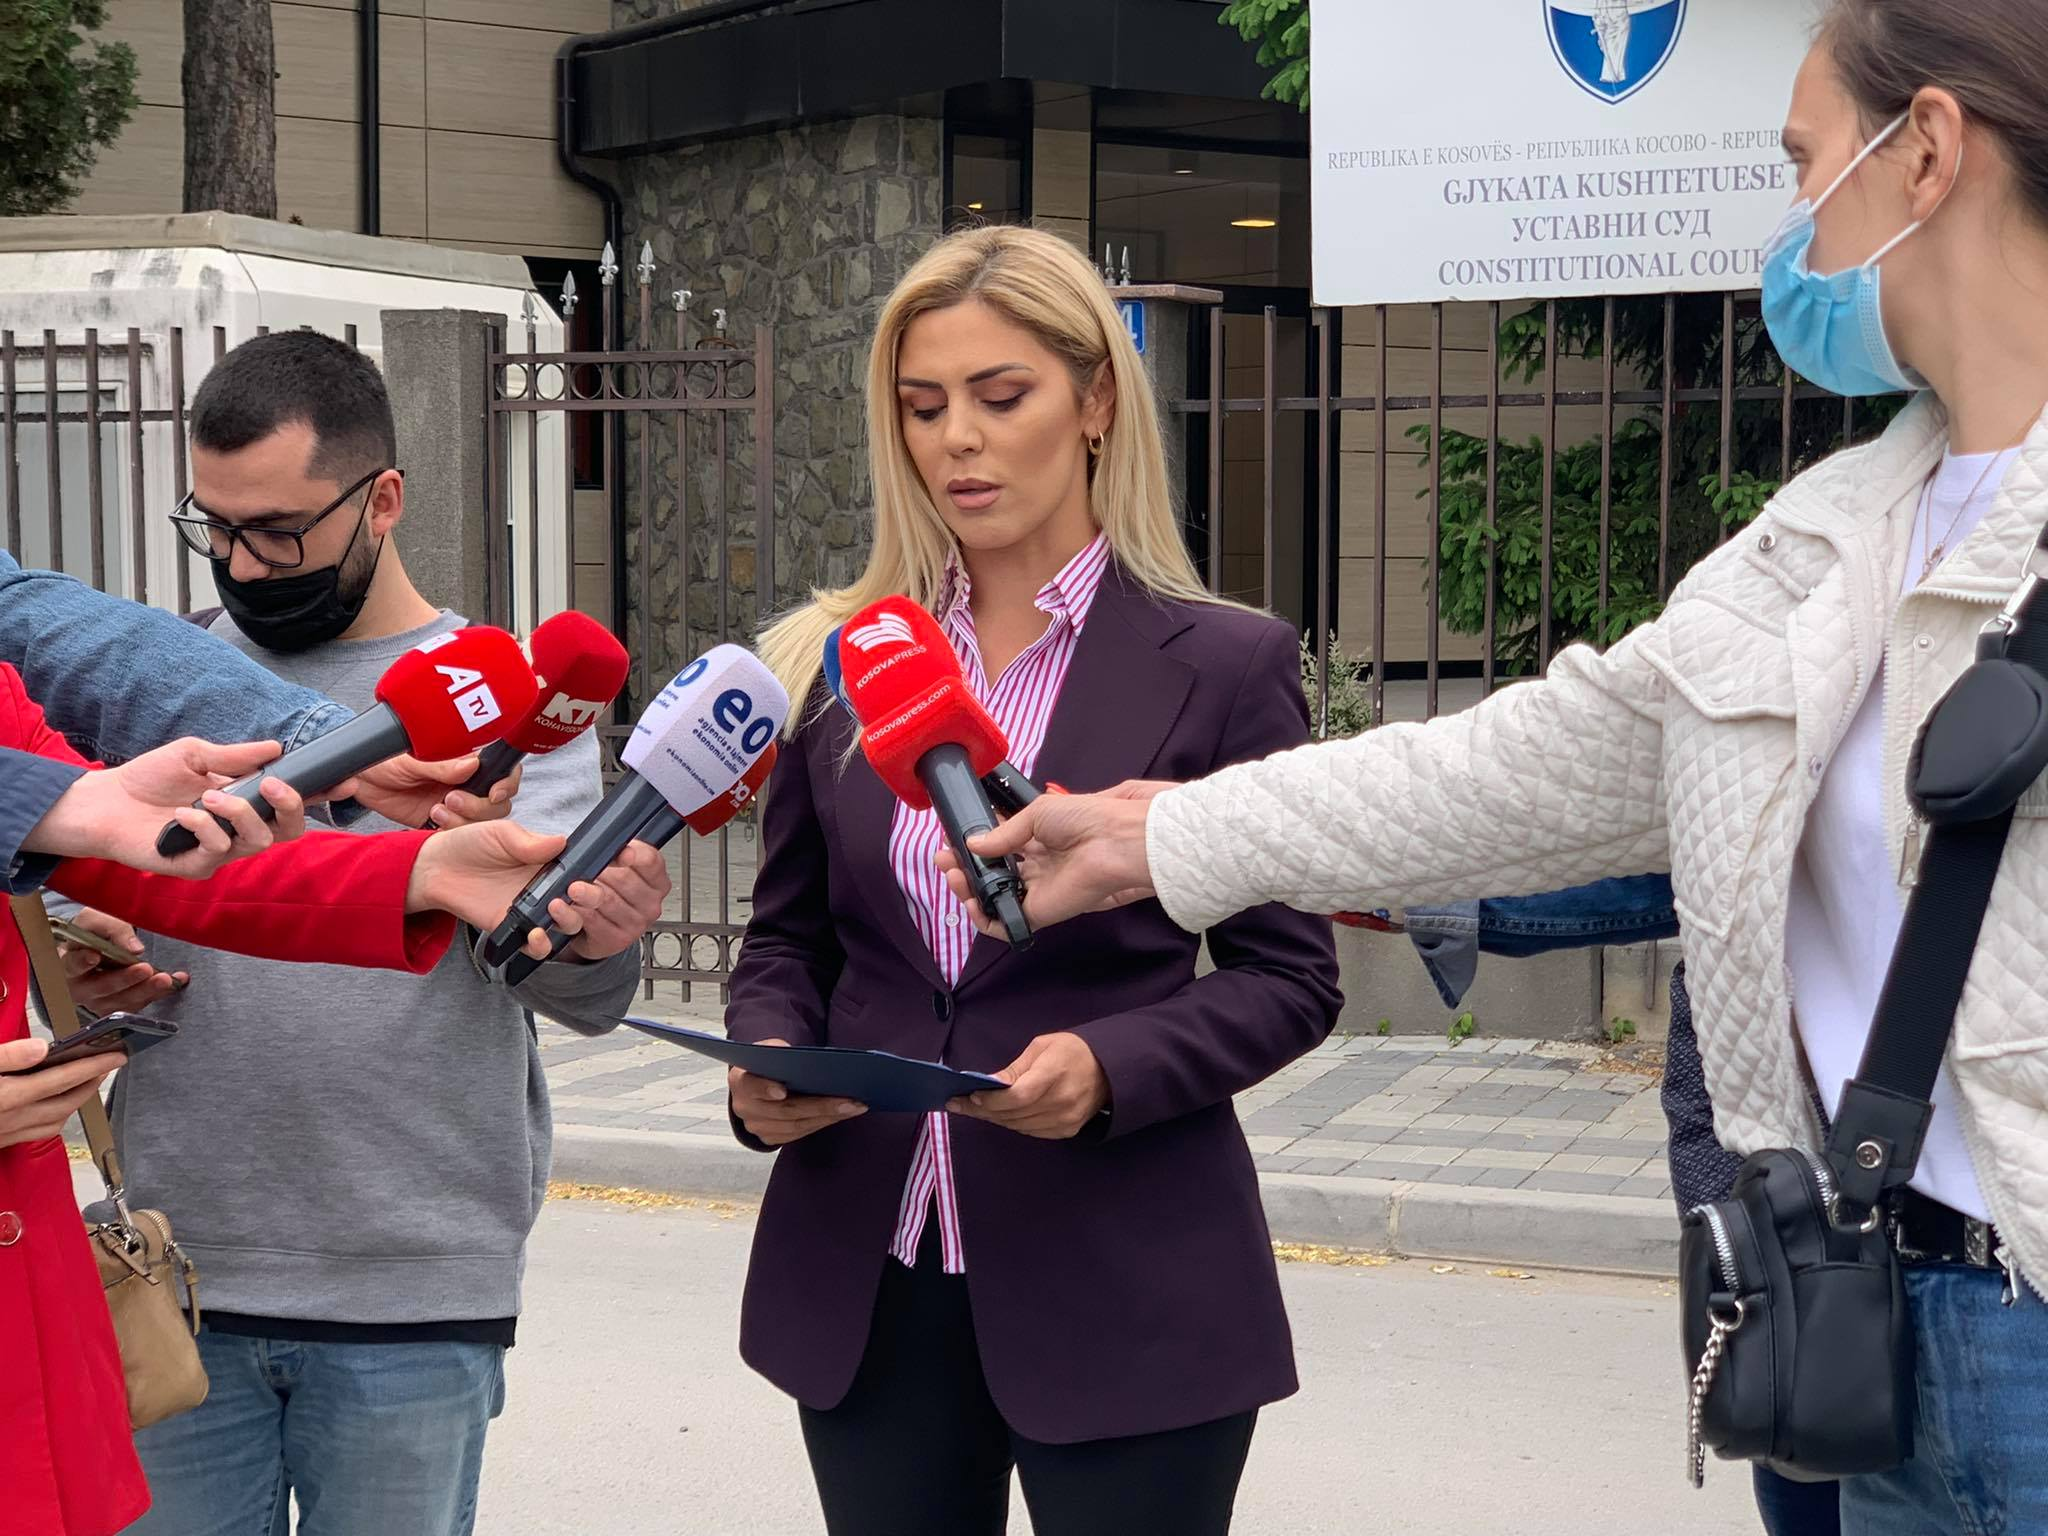 PDK submitted to the Constitutional Court the decision for 11 million euros allocated for the payment of electricity in the North